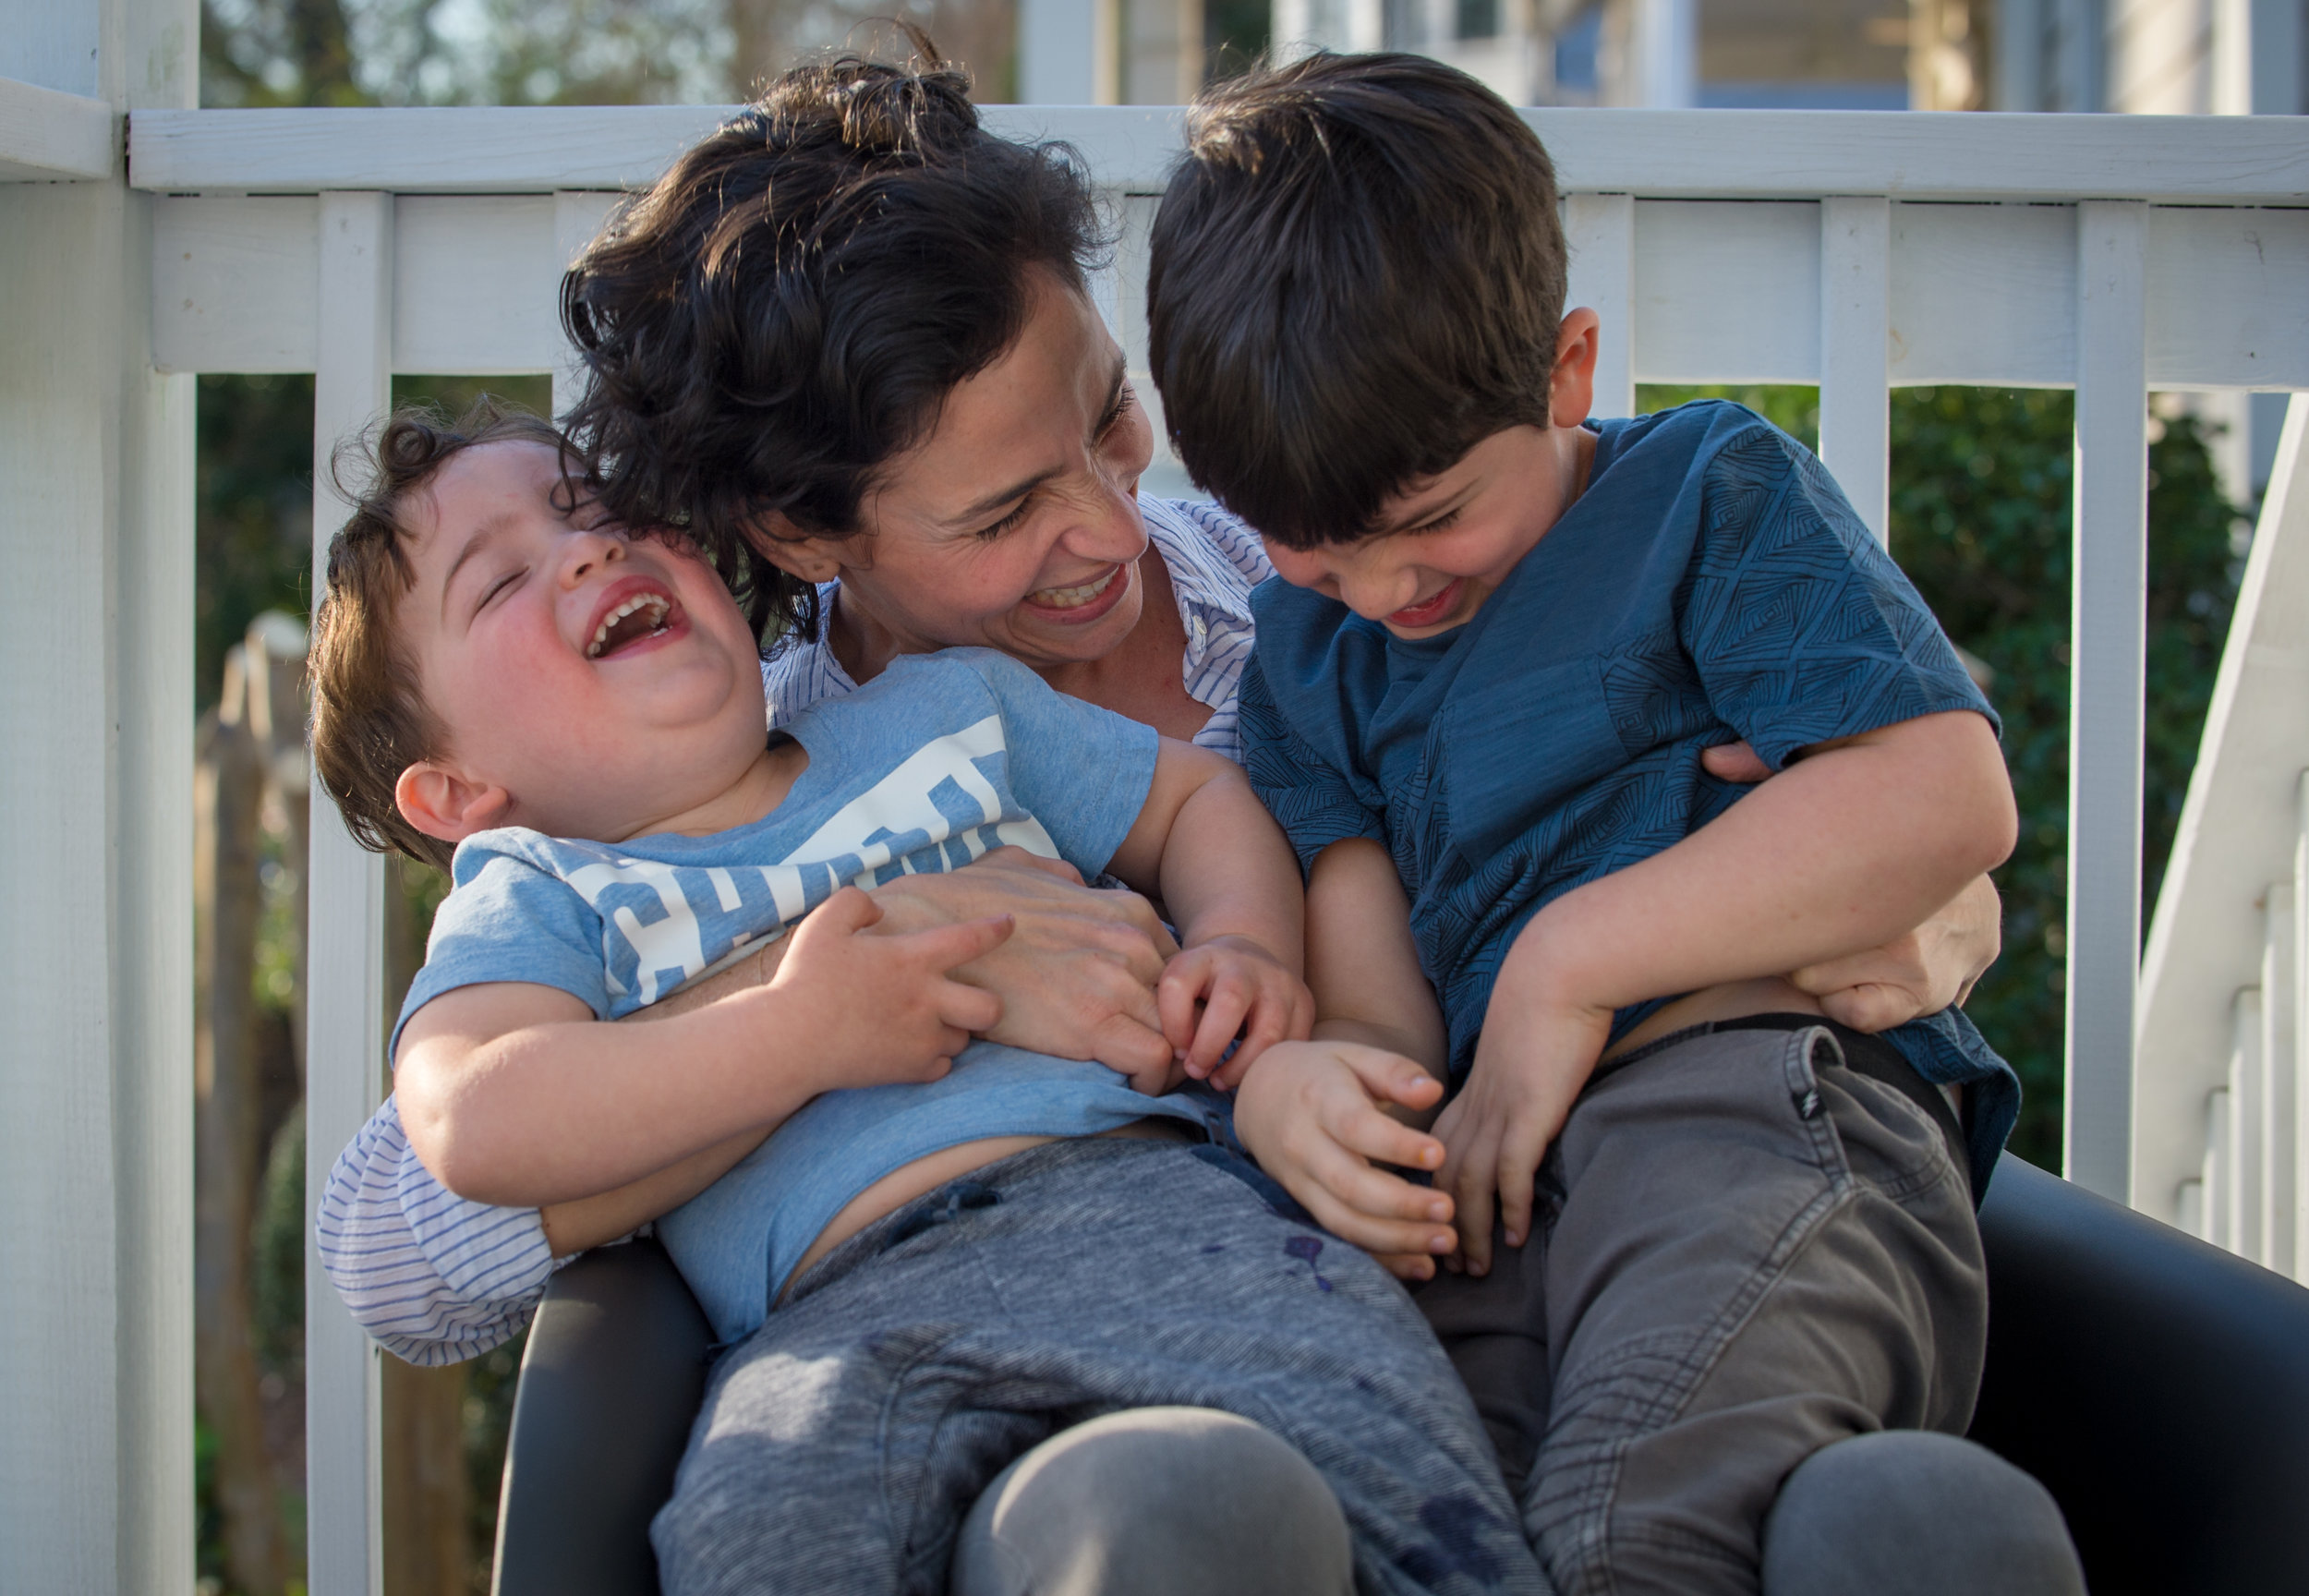 030418 DECATUR � Zoe Fishman Shacham spends time with sons (from left) Lev, 2, and Ari, 6, on the front porch of their Decatur home Sunday, March 3, 2018.